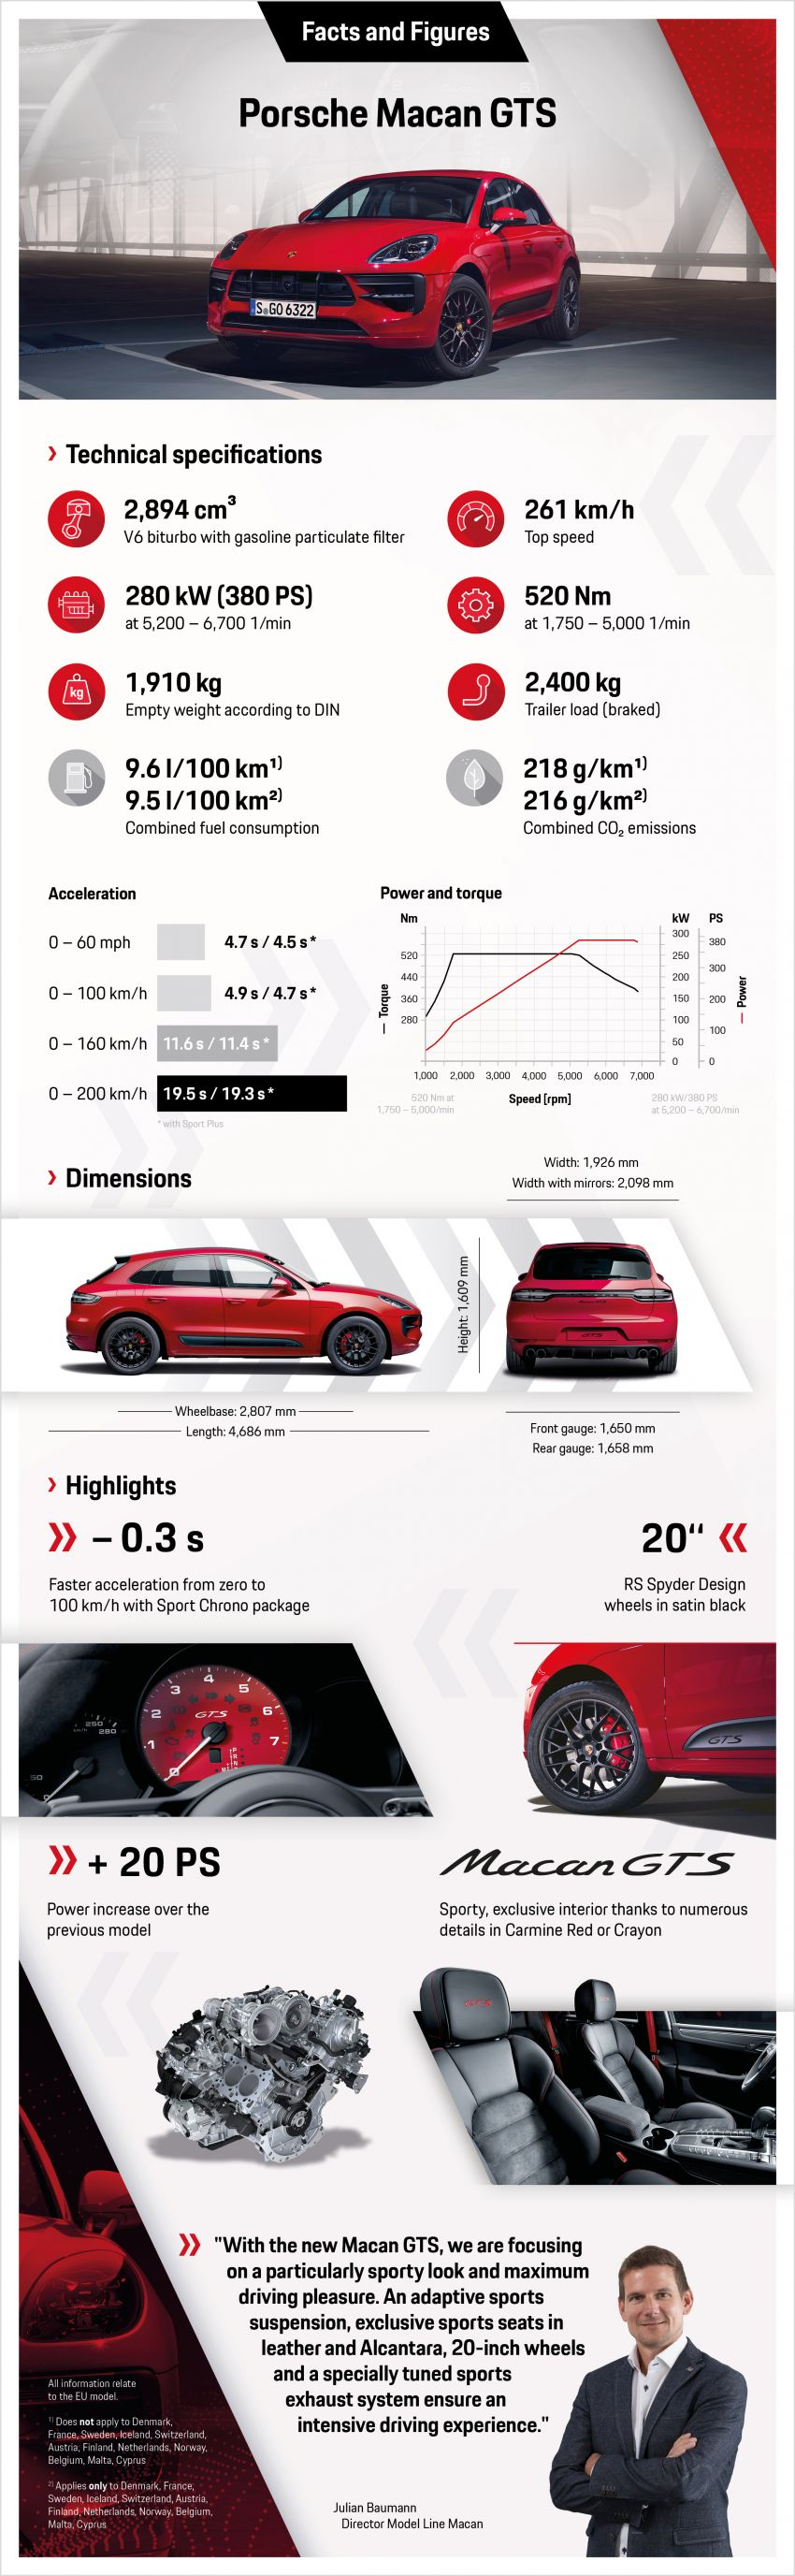 Porsche Macan GTS facelift, the 380 PS/520 Nm athlete Image #1060560